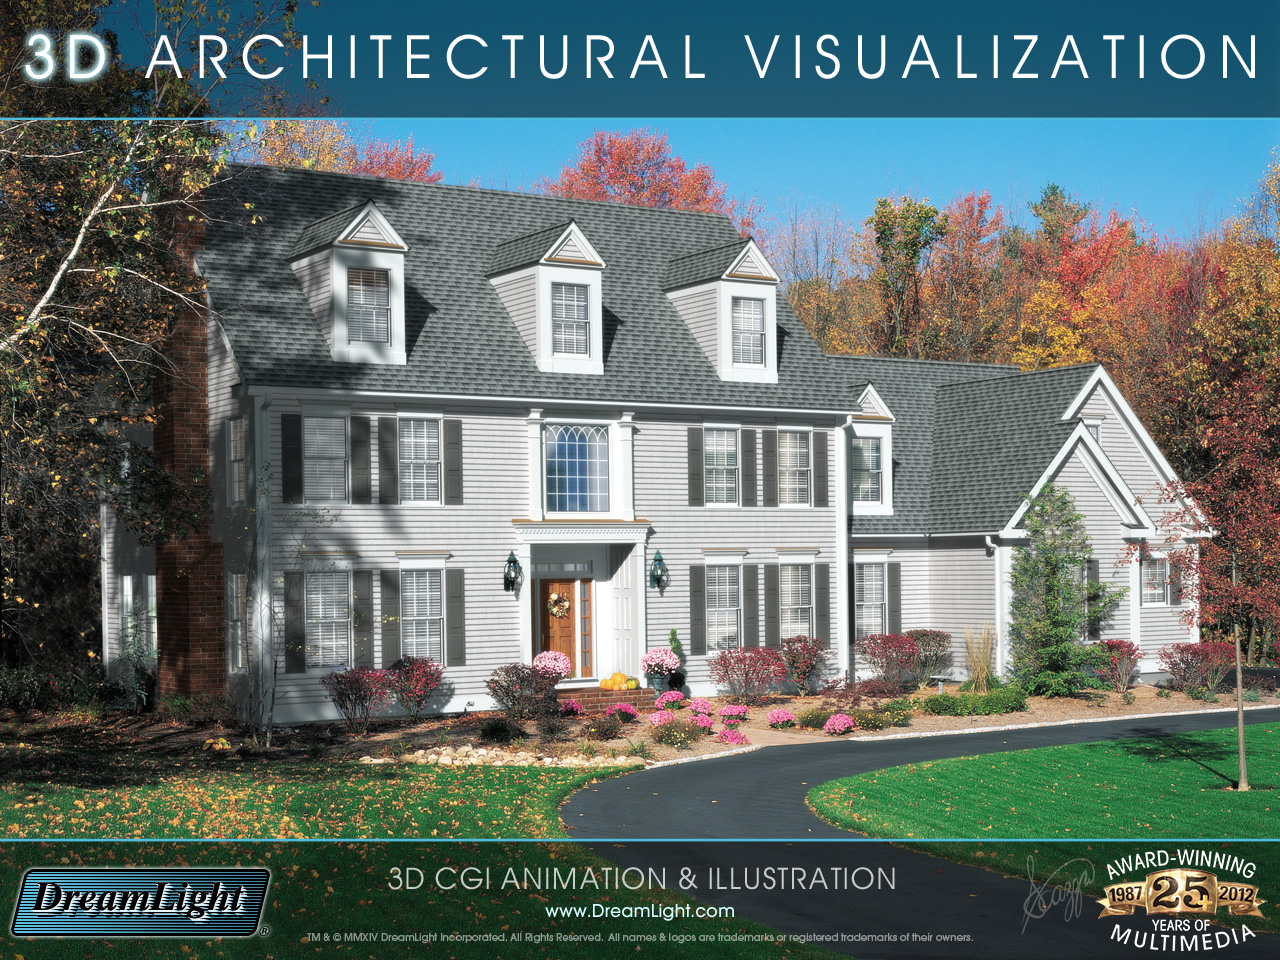 3d cgi architectural visualization illustration - 3d architectural visualization ...